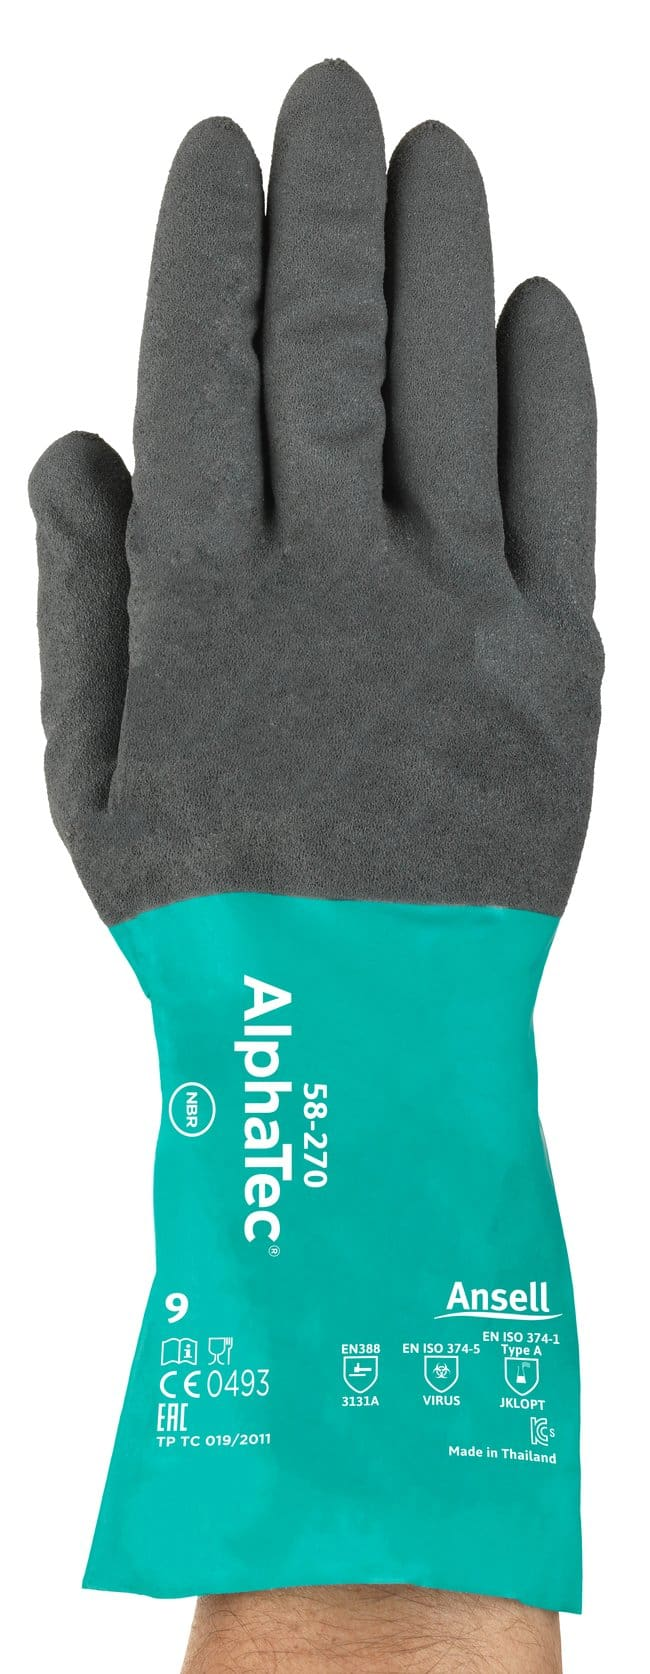 Ansell Edmont™ AlphaTec™ 57-270 Series Nitrile Immersion Gloves Size: 9 Products